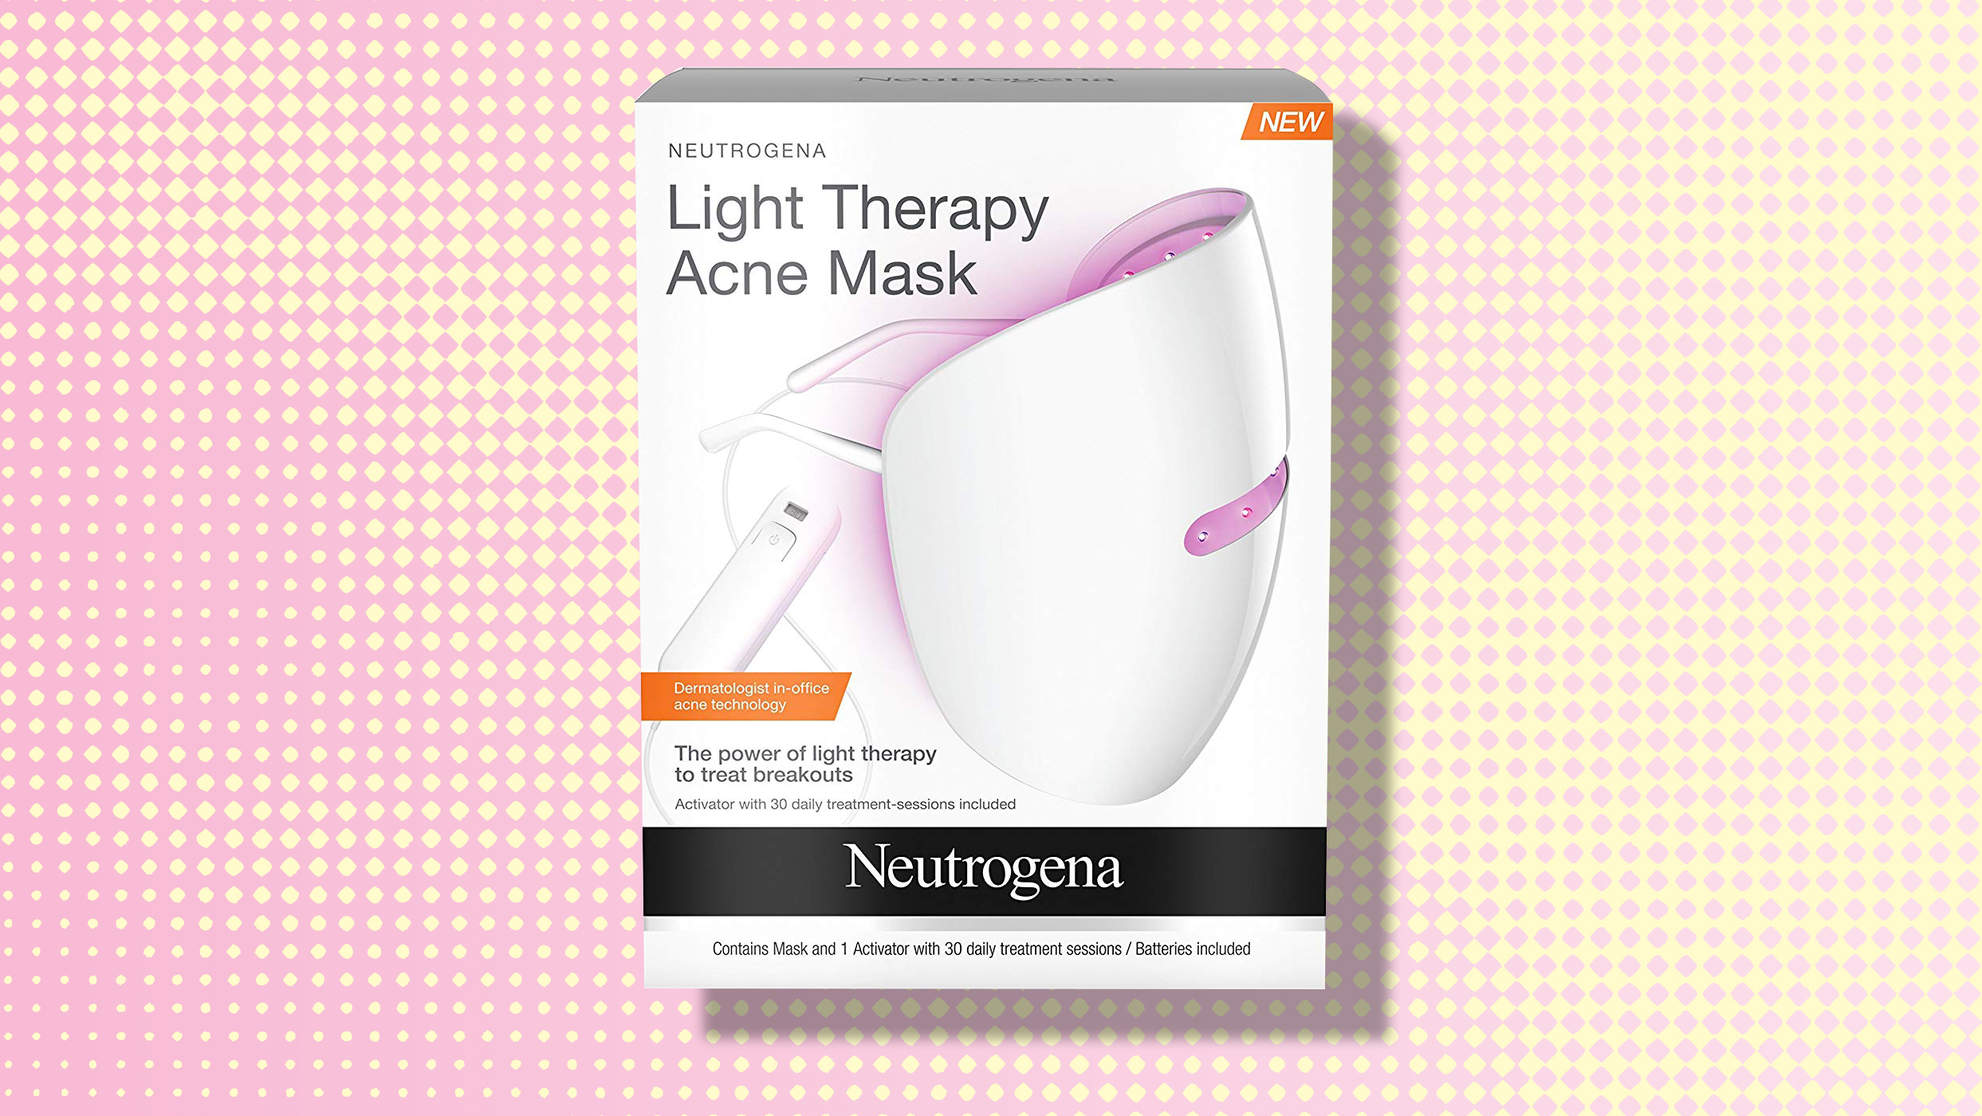 neutrogena-led-mask